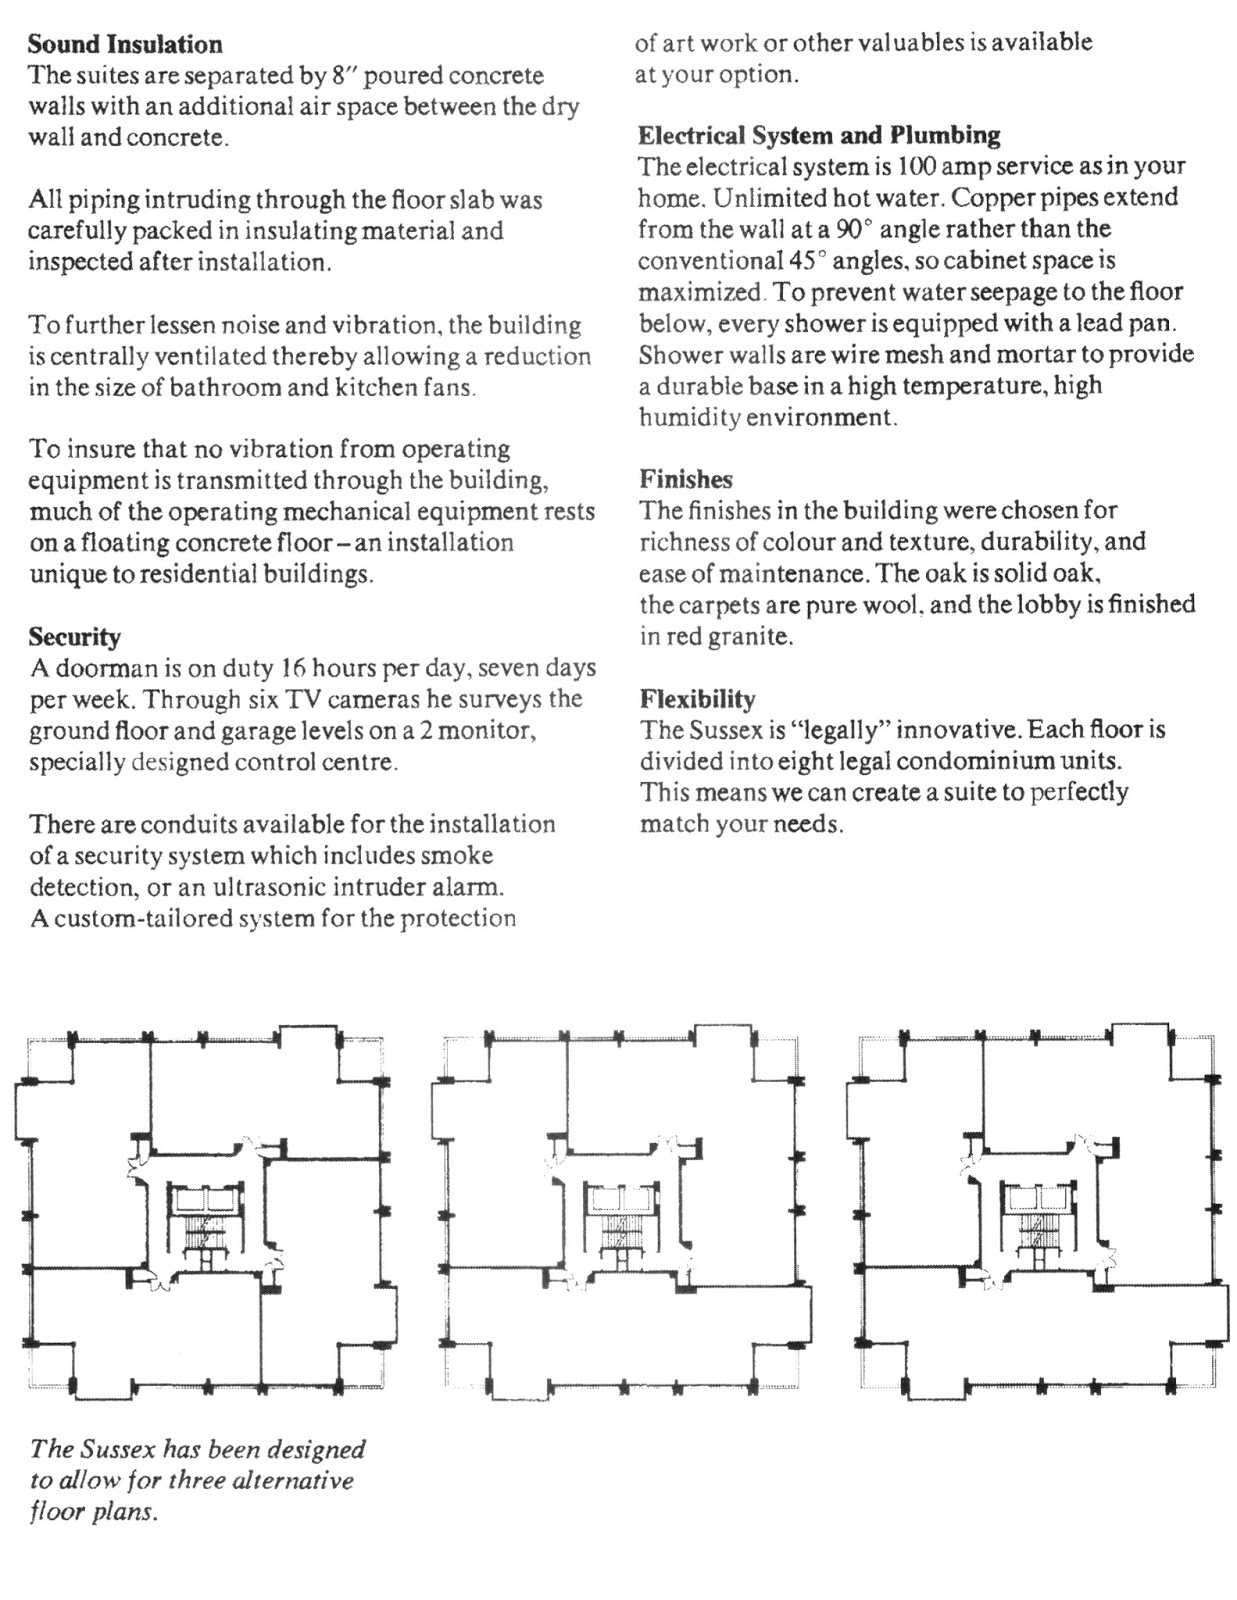 Enchanting 100 Amp Ground Wire Pictures - Schematic diagram and ...